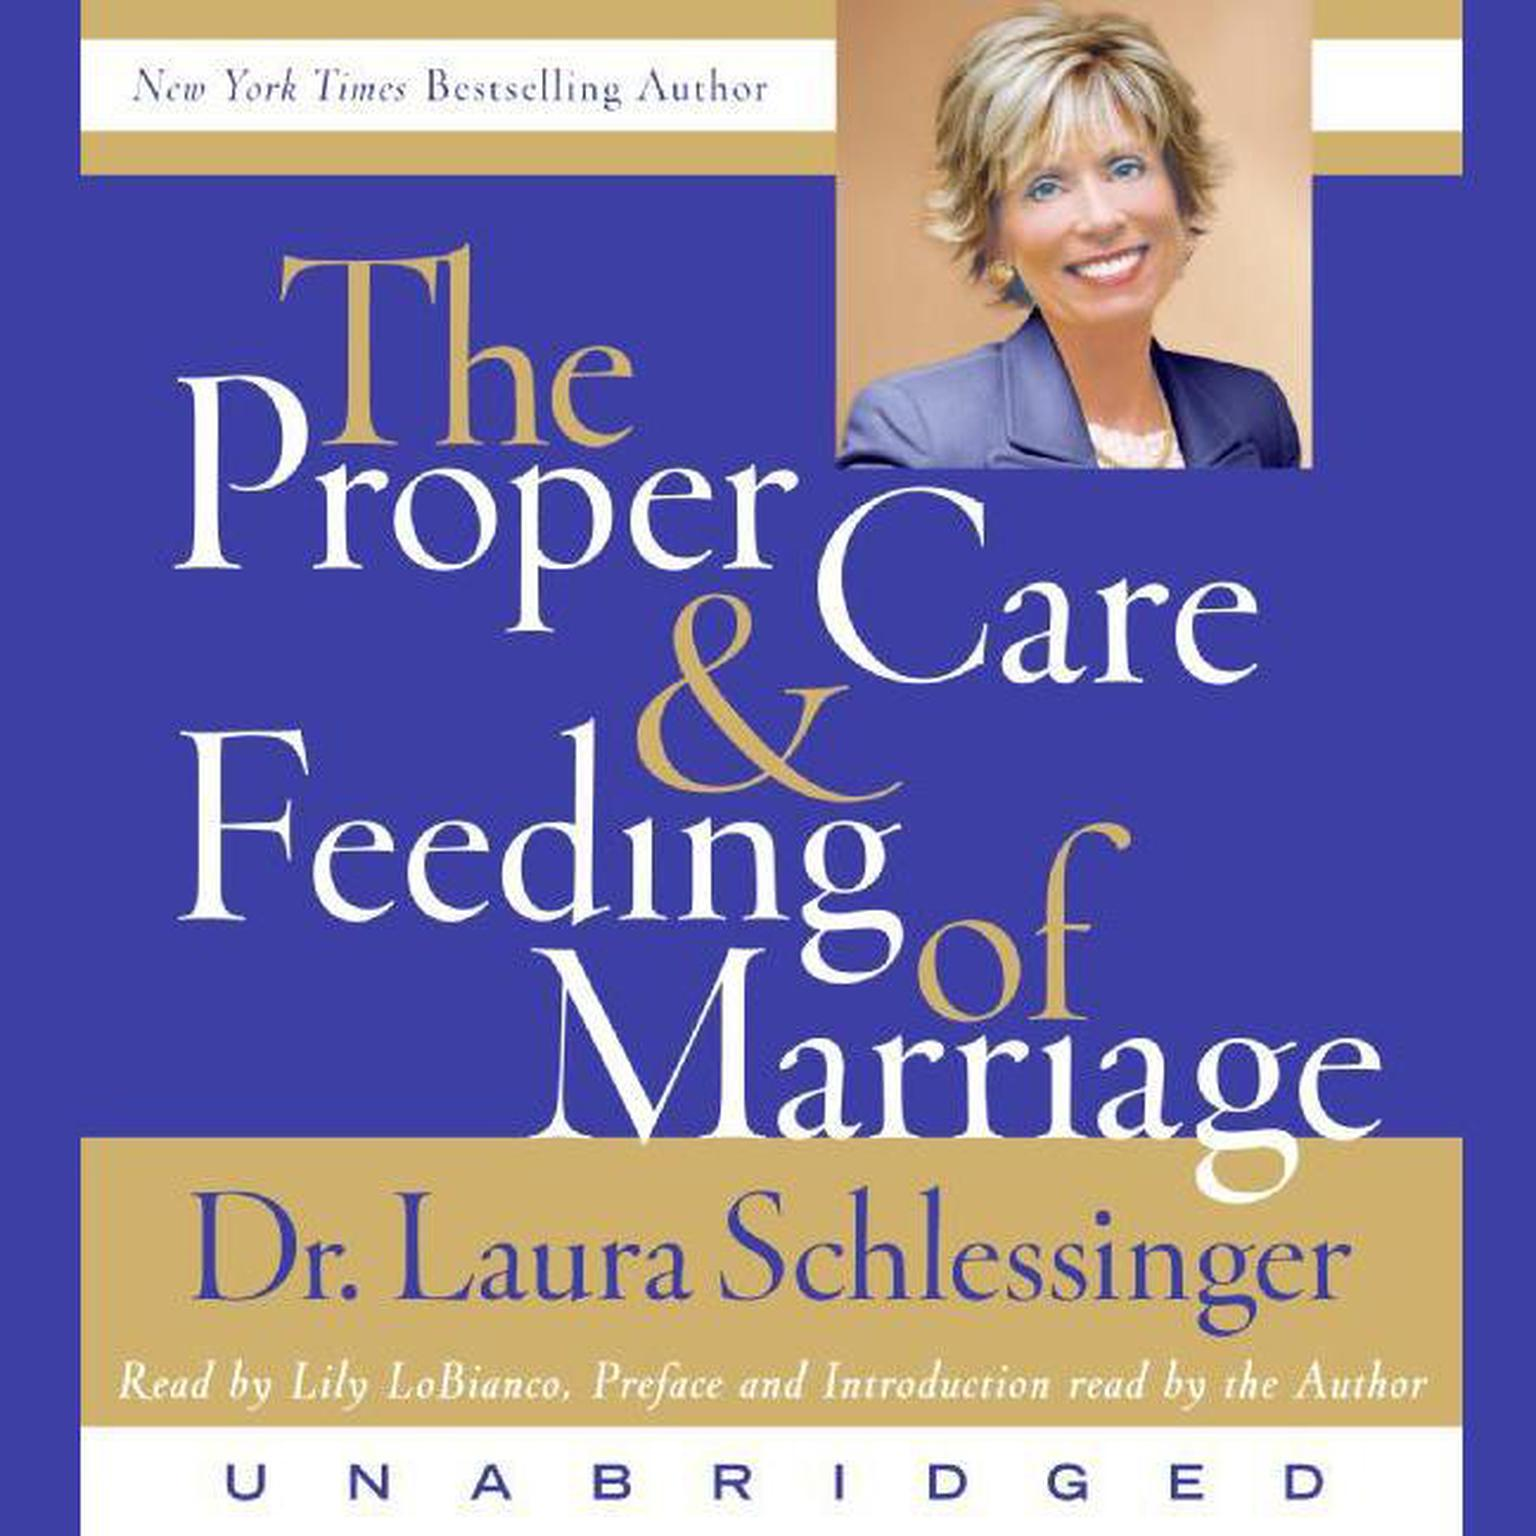 Printable The Proper Care and Feeding of Marriage: Preface and Introduction read by Dr. Laura Schlessinger Audiobook Cover Art